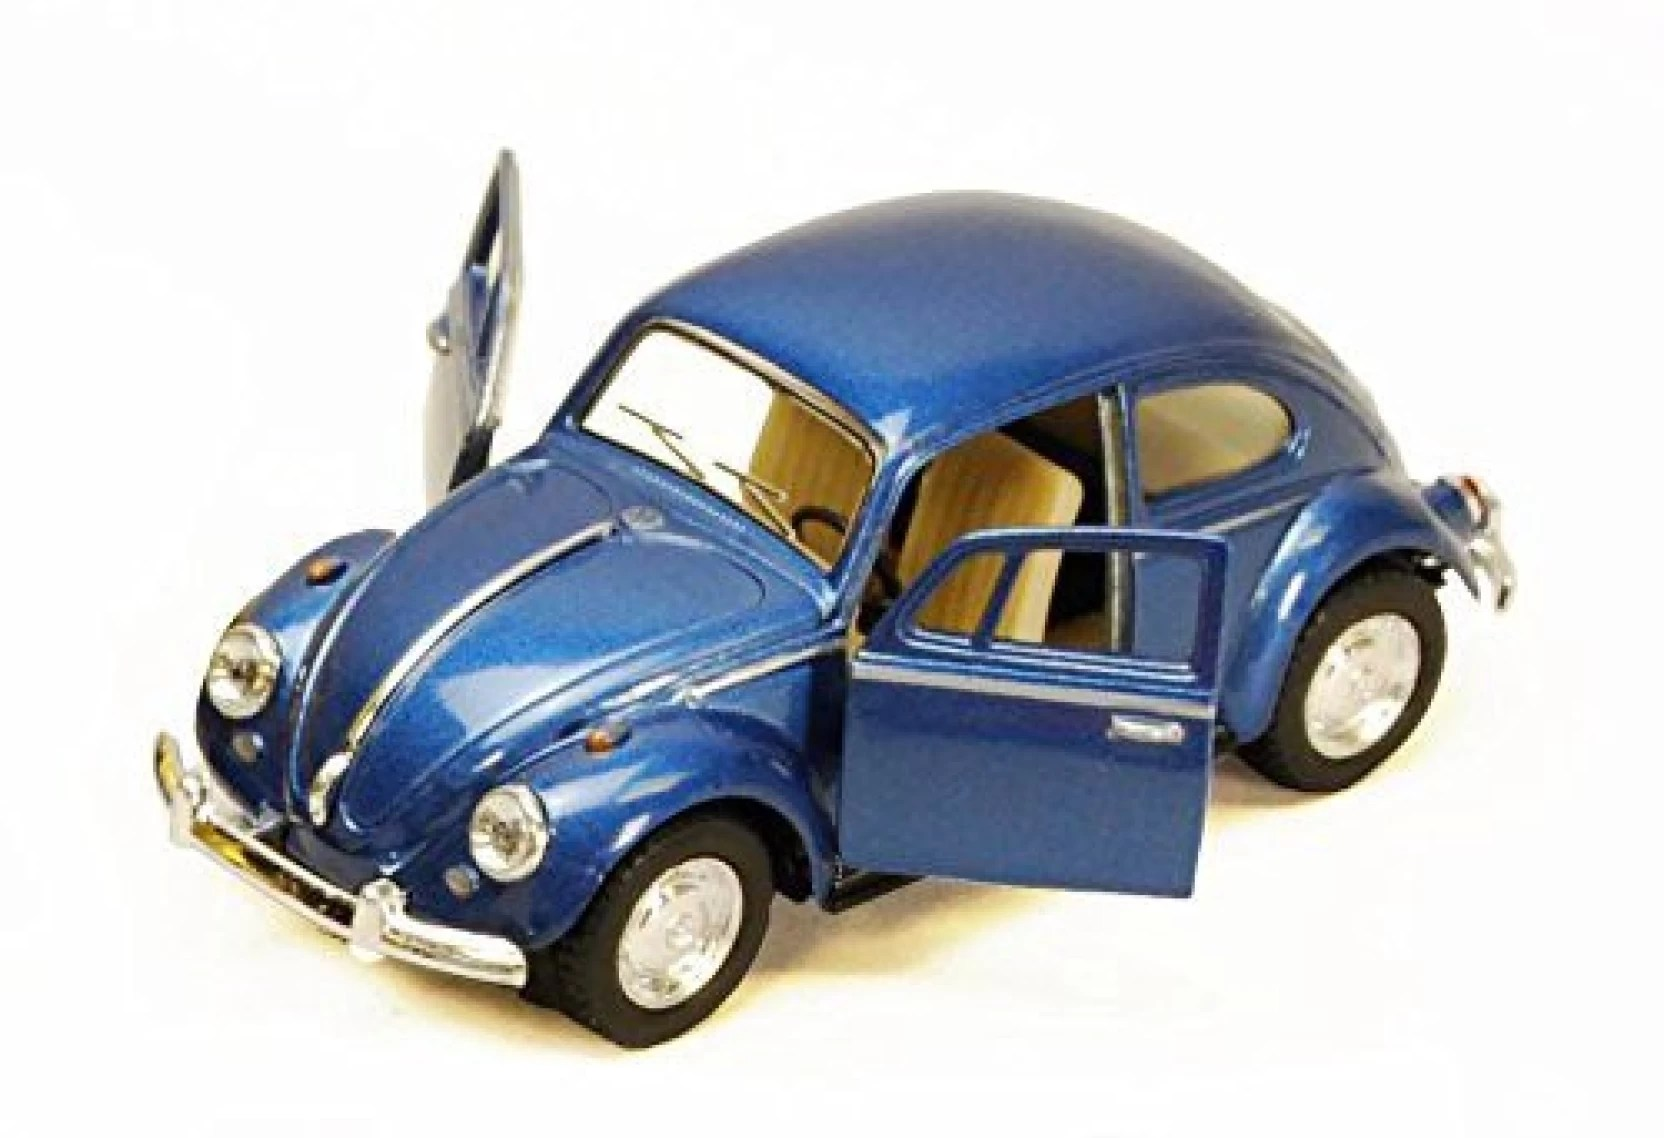 kinsmart 1967 volkswagen classic beetle blue 5057d 1 32 scale diecast model toy car brand new but no box multicolor  [ 1664 x 1138 Pixel ]